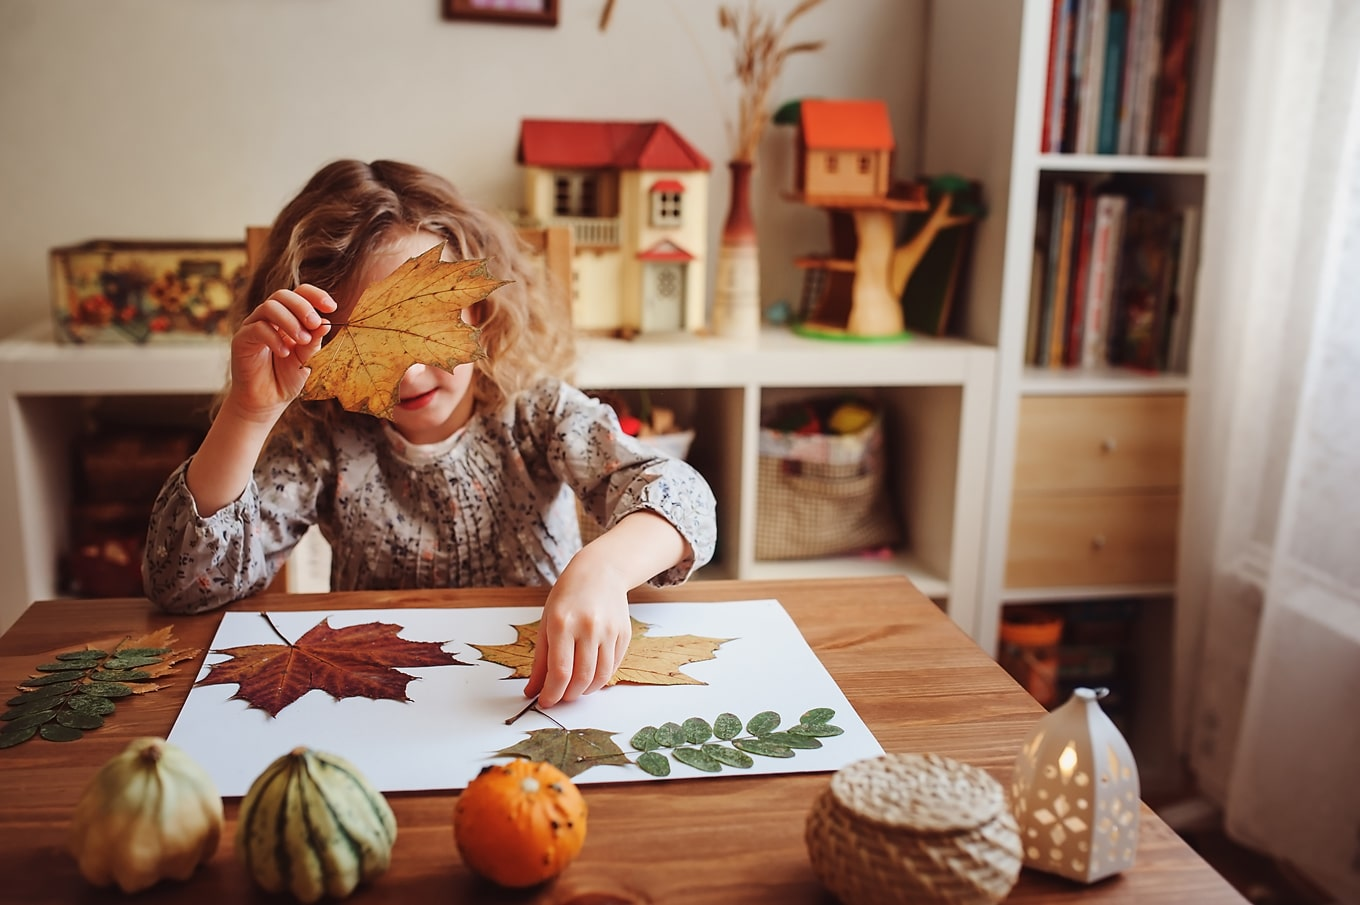 Child Enjoying a Fall Nature Craft